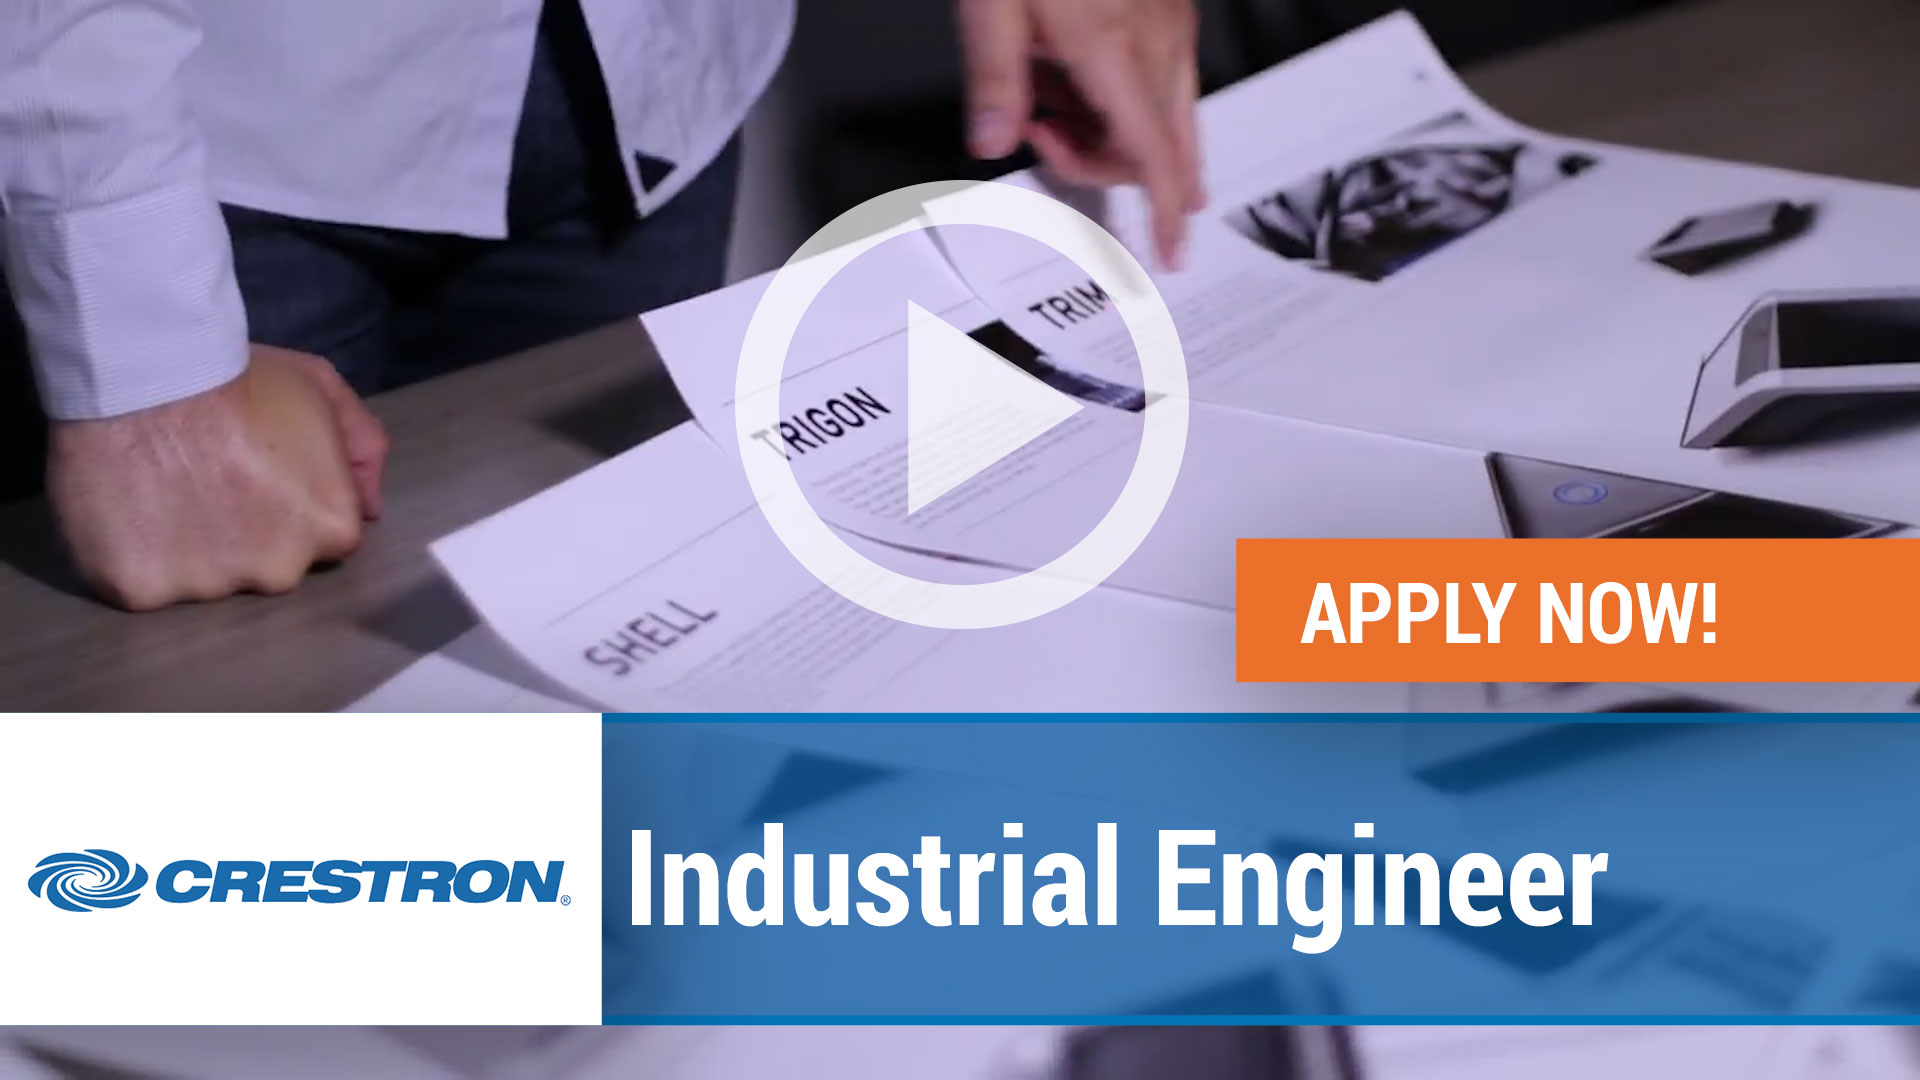 Watch our careers video for available job opening Industrial Engineer in Rockleigh, NJ, USA